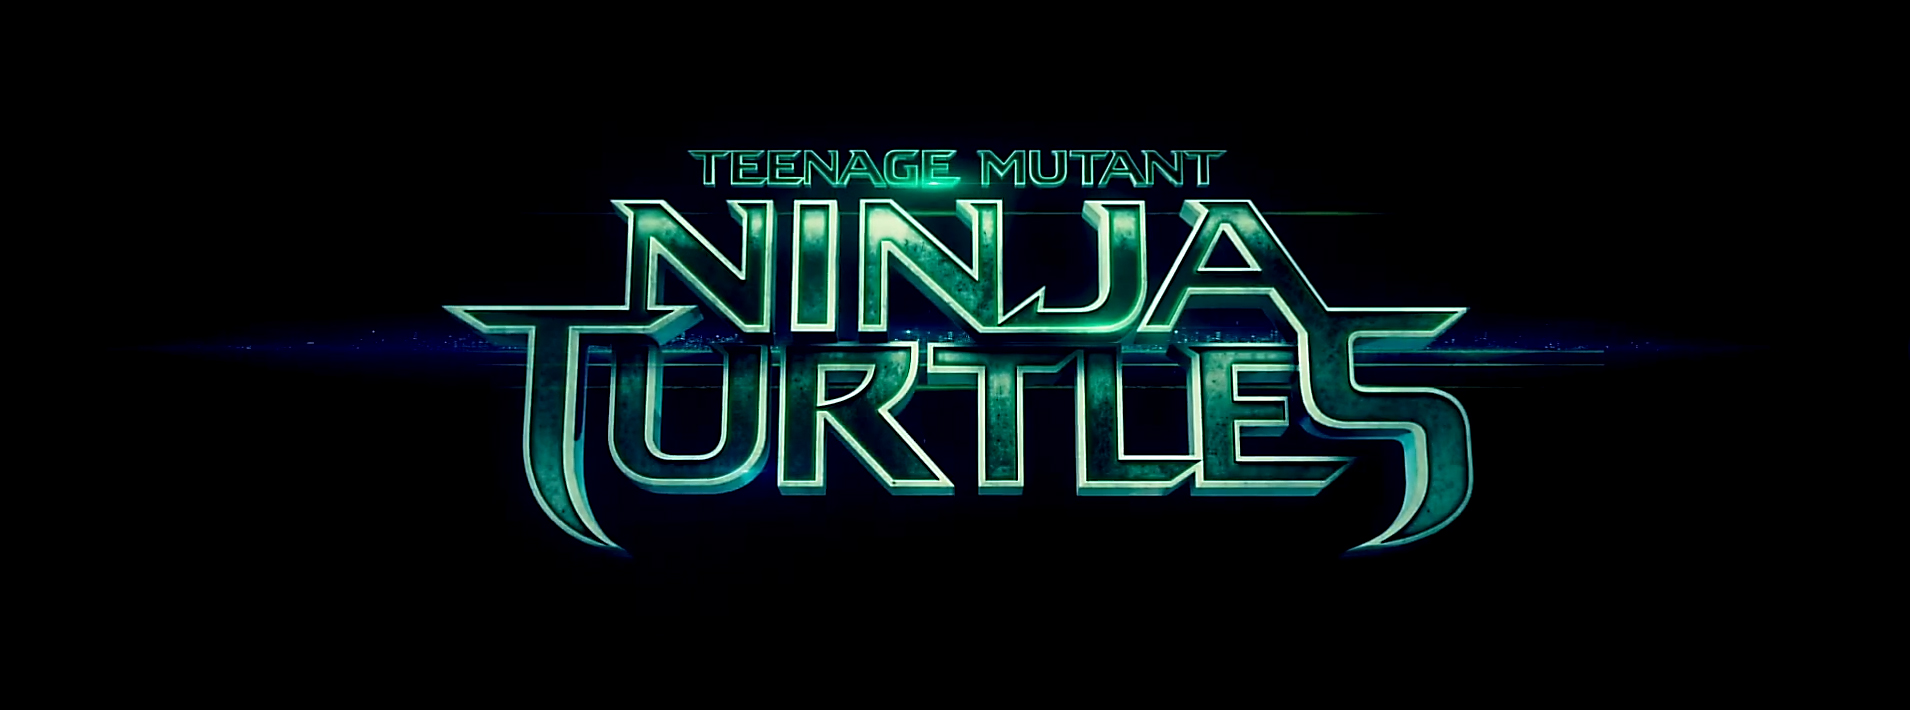 TEENAGE MUTANT NINJA-Official Poster Banner PROMO TRAILER-27MARÇO2014-01